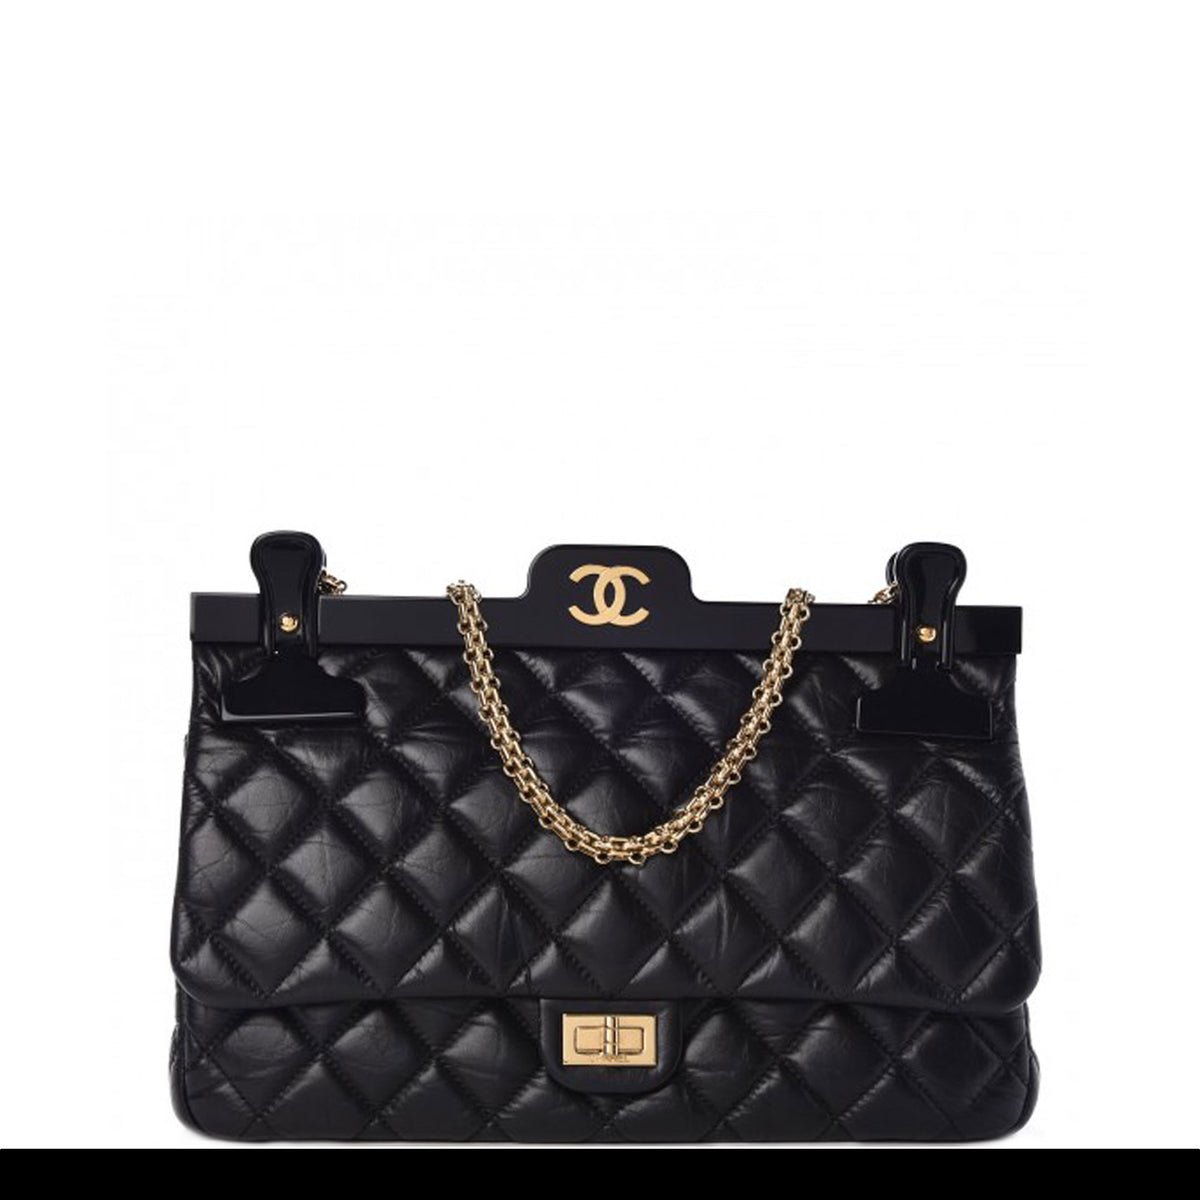 99bbc22305c9 Chanel Classic Flap Runway Hanger Large Reissue Bag – House of Carver